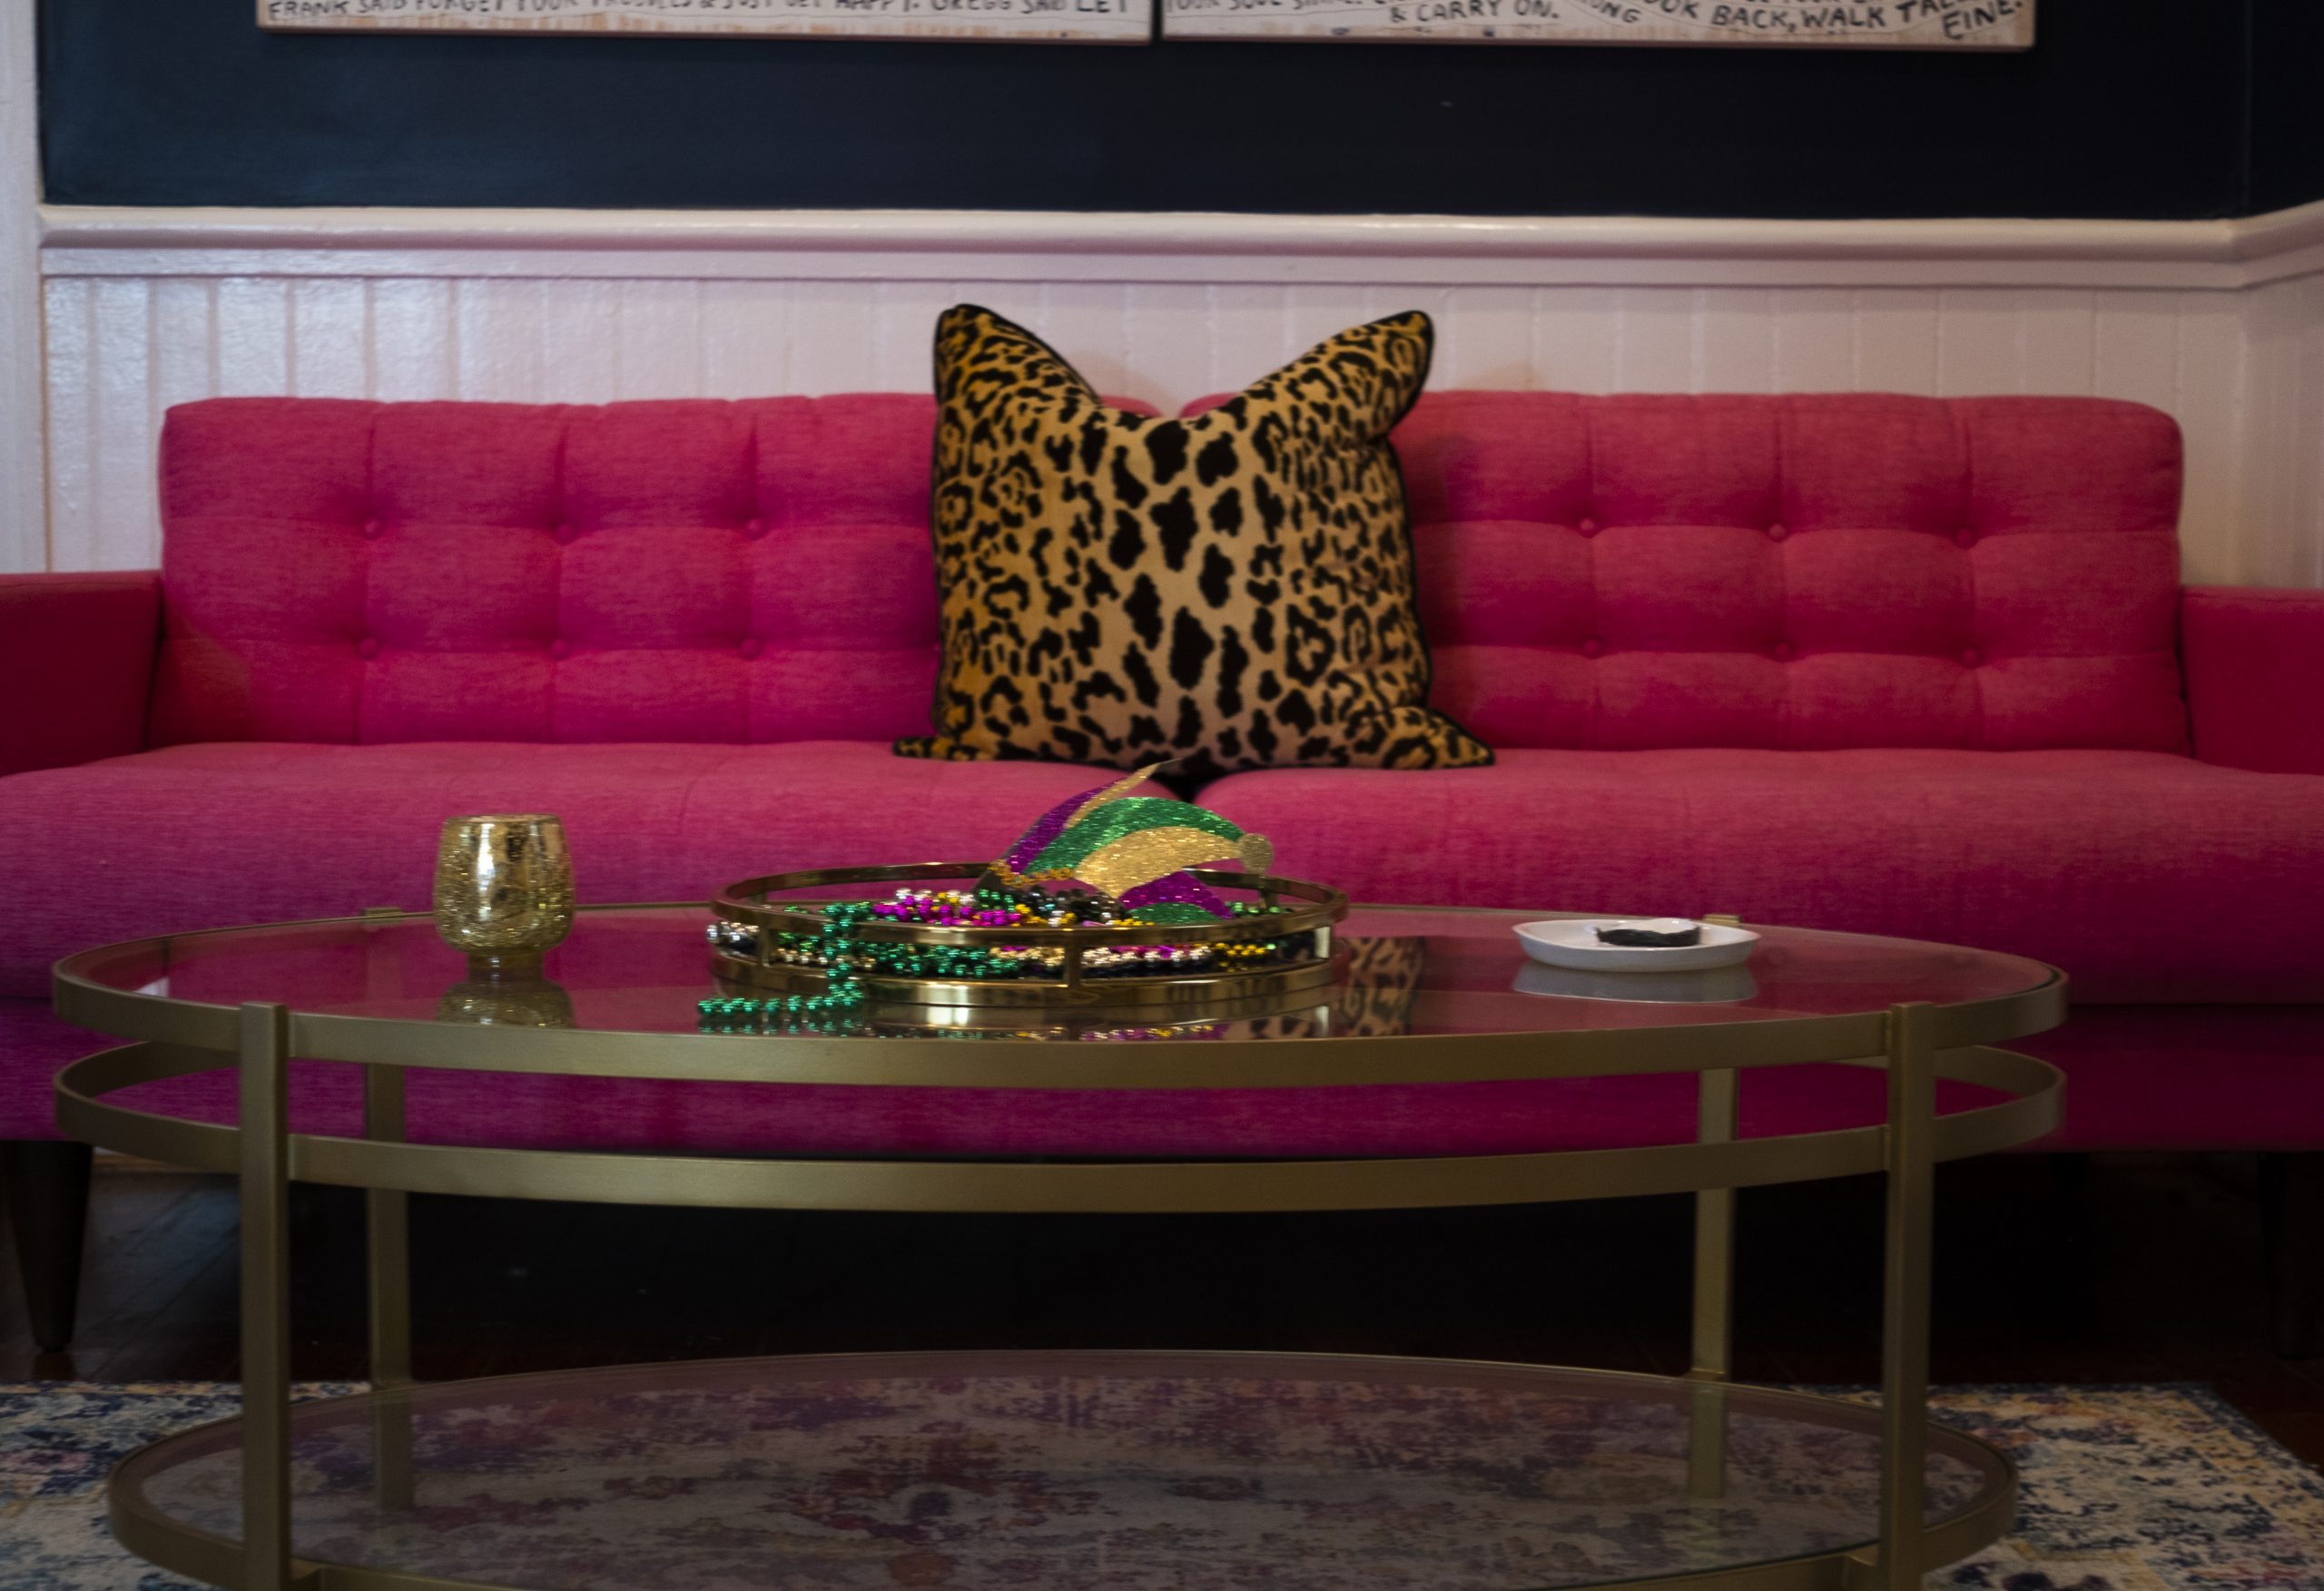 Closeup of Pink Sofa and Coffee Table with Mardi Gras Throws